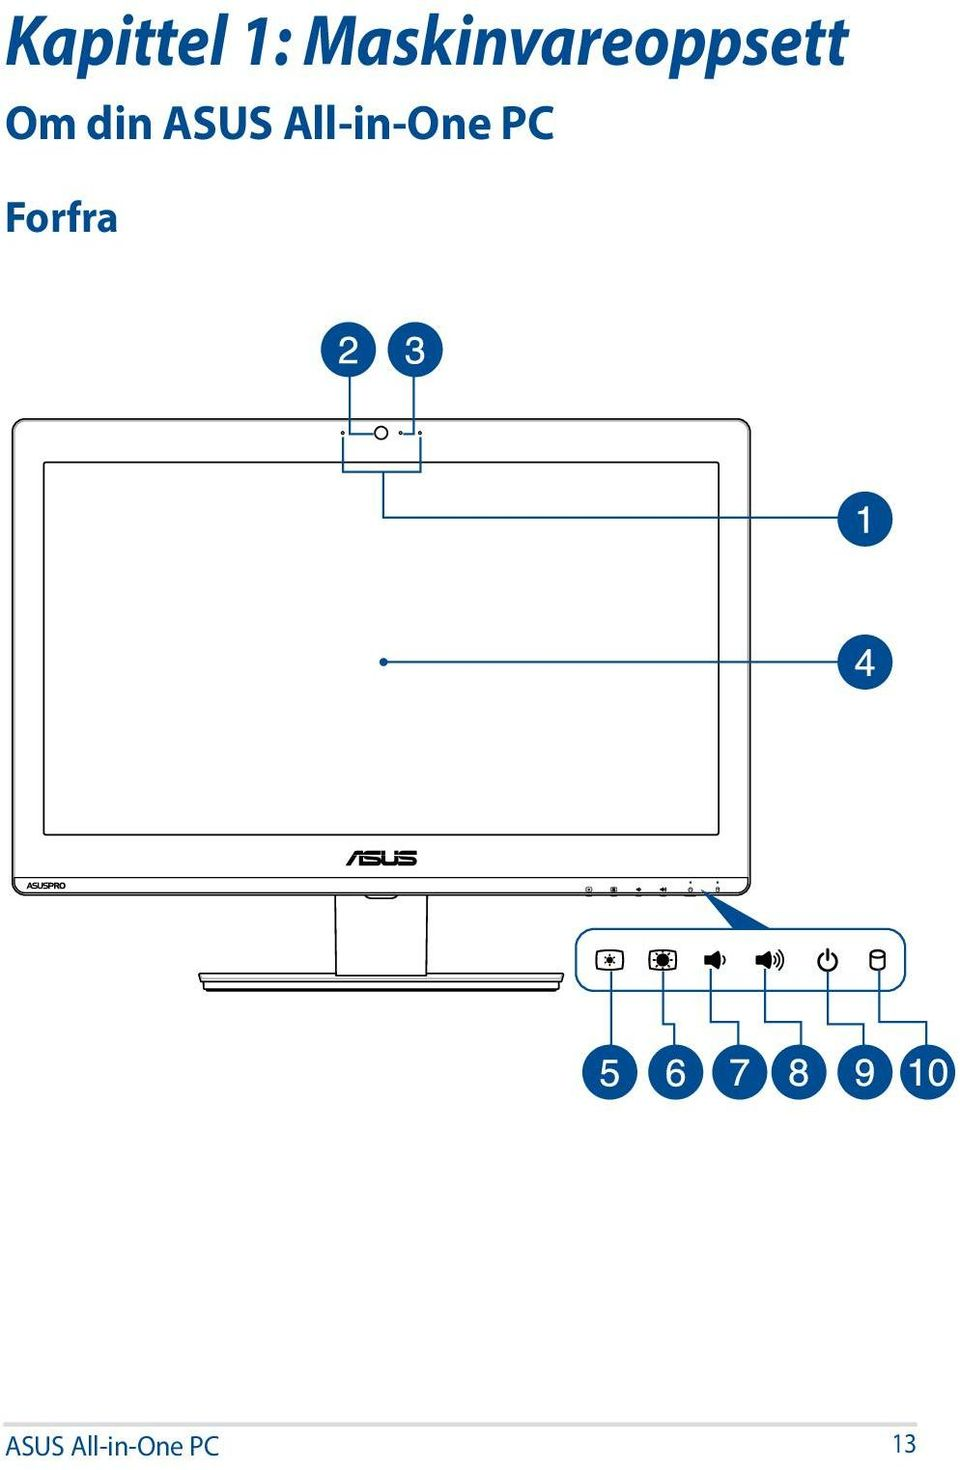 din ASUS All-in-One